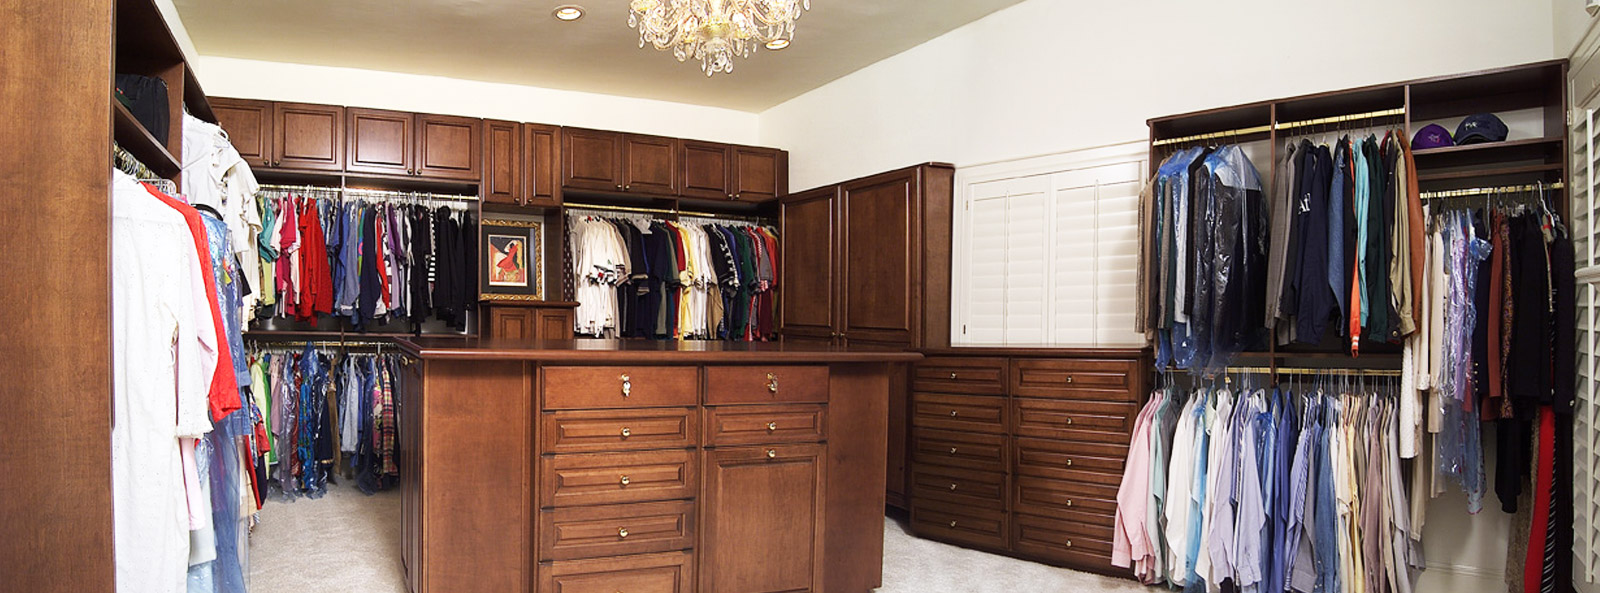 Southern Closet Systems